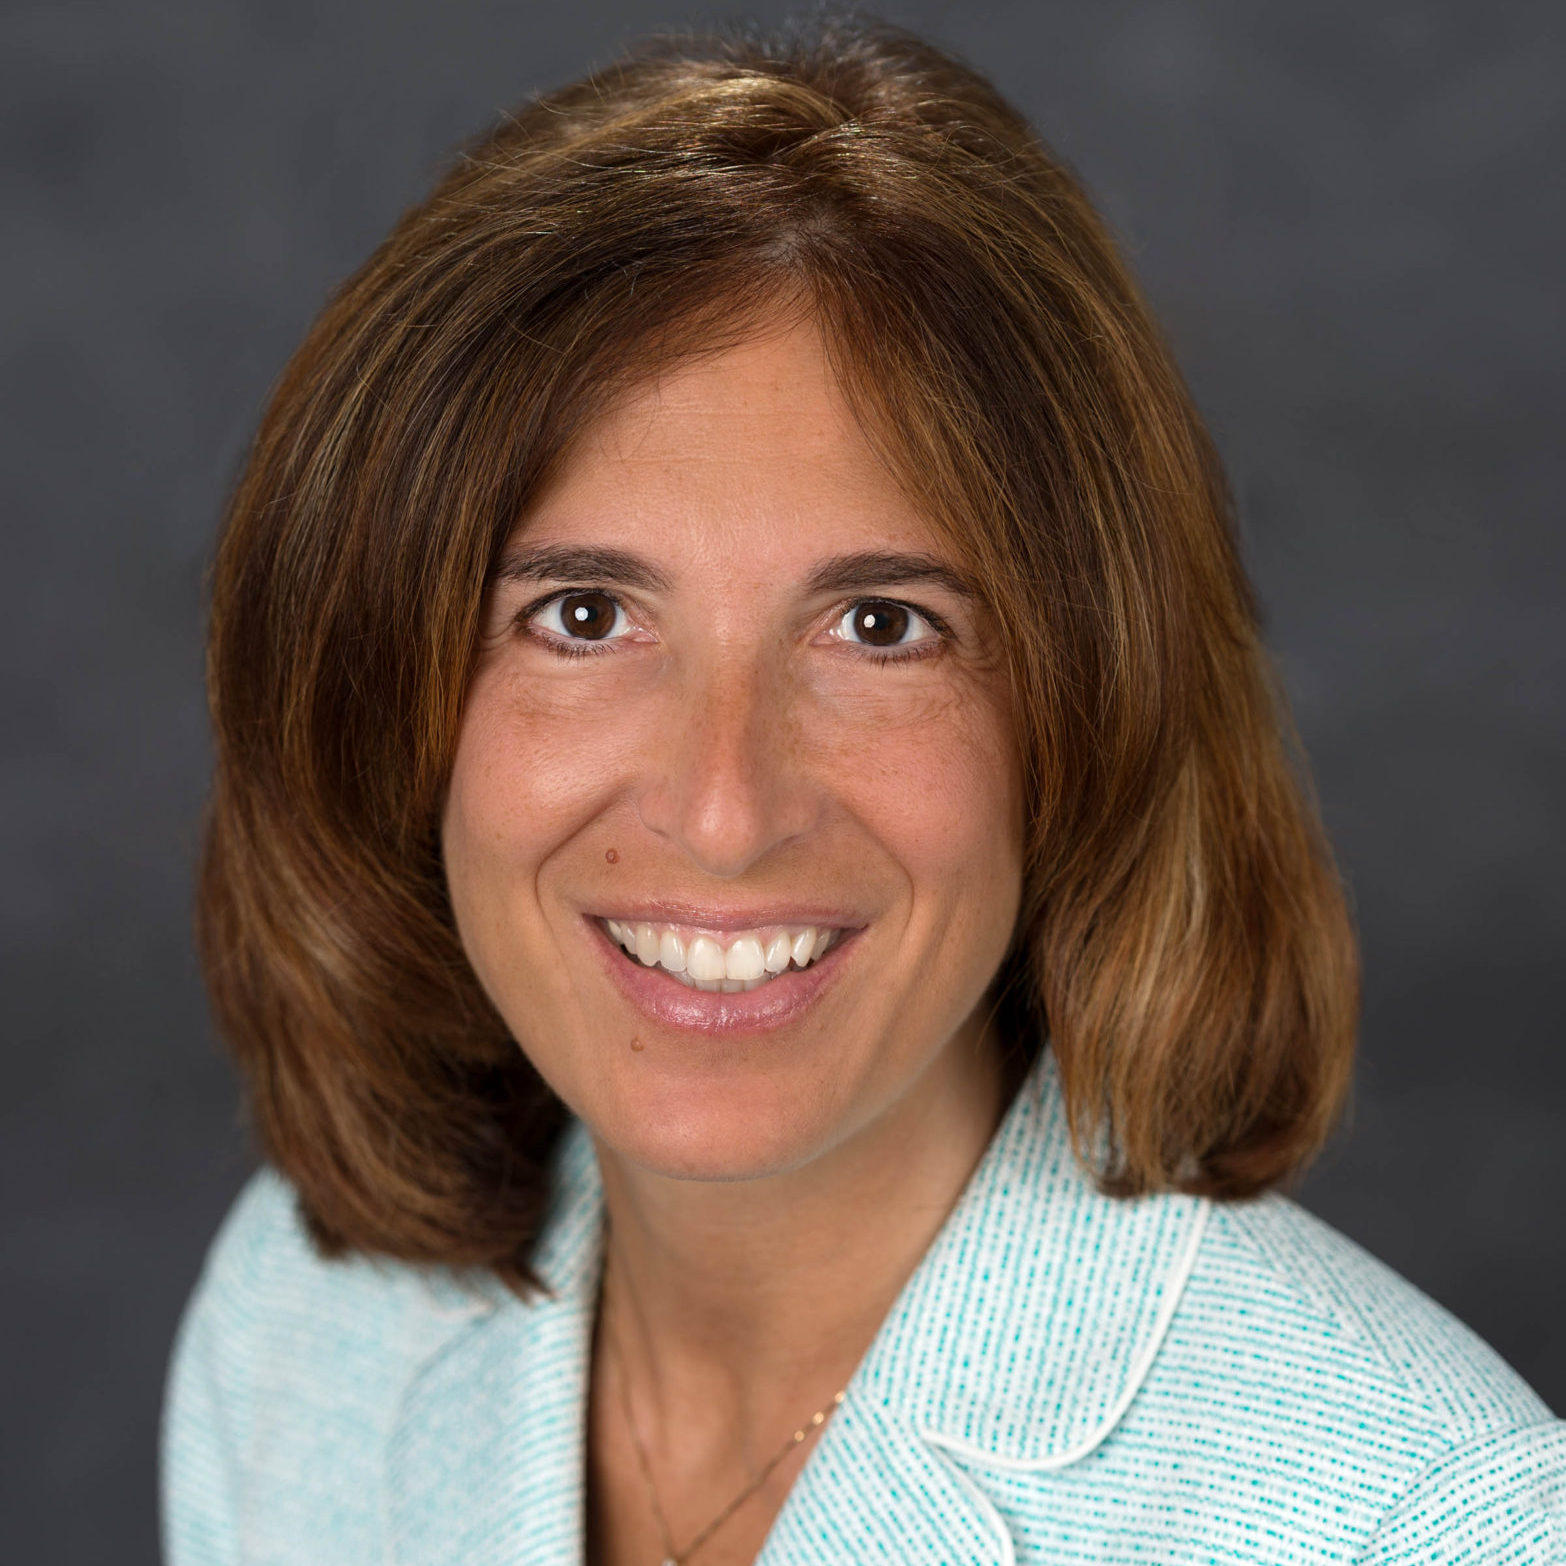 Ann Bonitatibus, Principal of Thomas Jefferson High School for Science and Technology